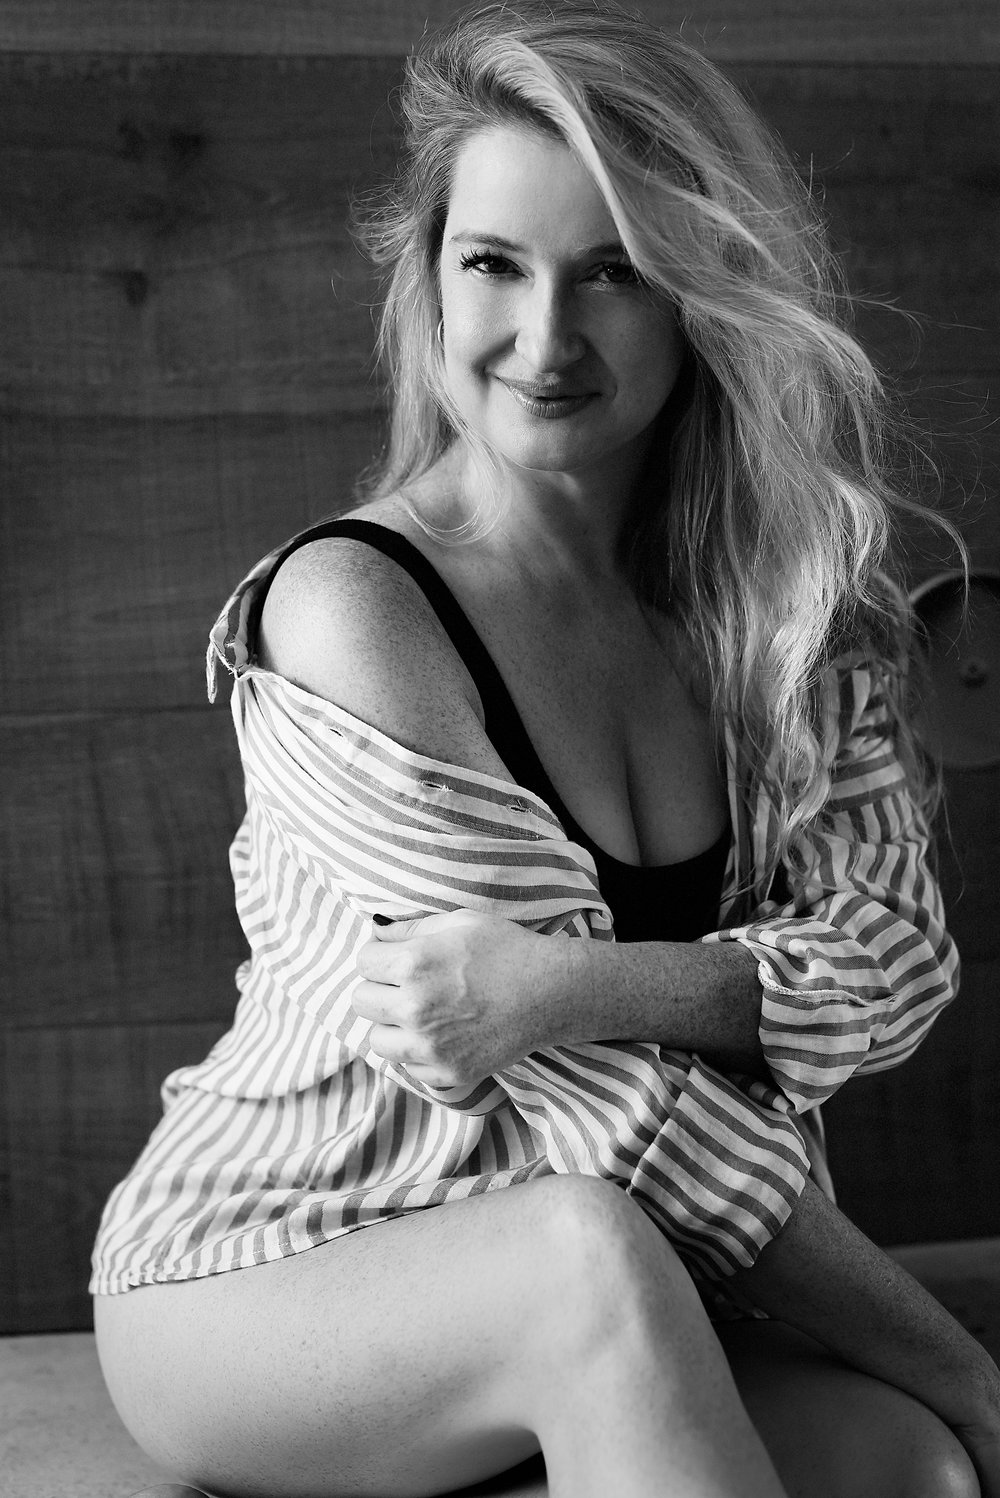 LIFE AS FINE ART OWNER + ARTIST CATE SCAGLIONE Image courtesy of Kara Marie | Kara Marie Boudoir, Austin, TX